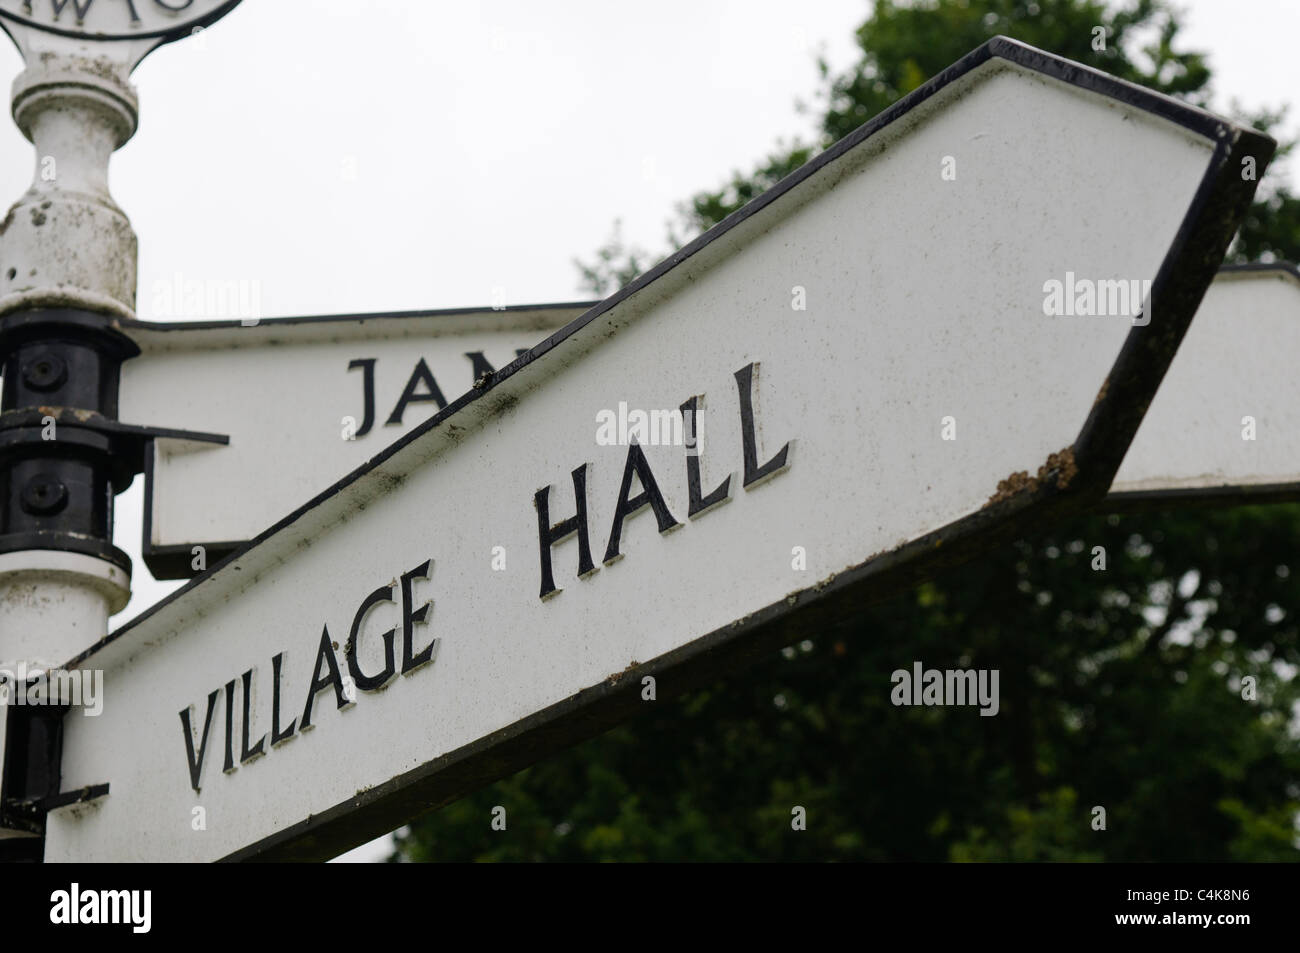 Sign pointing to the Village Hall - Stock Image